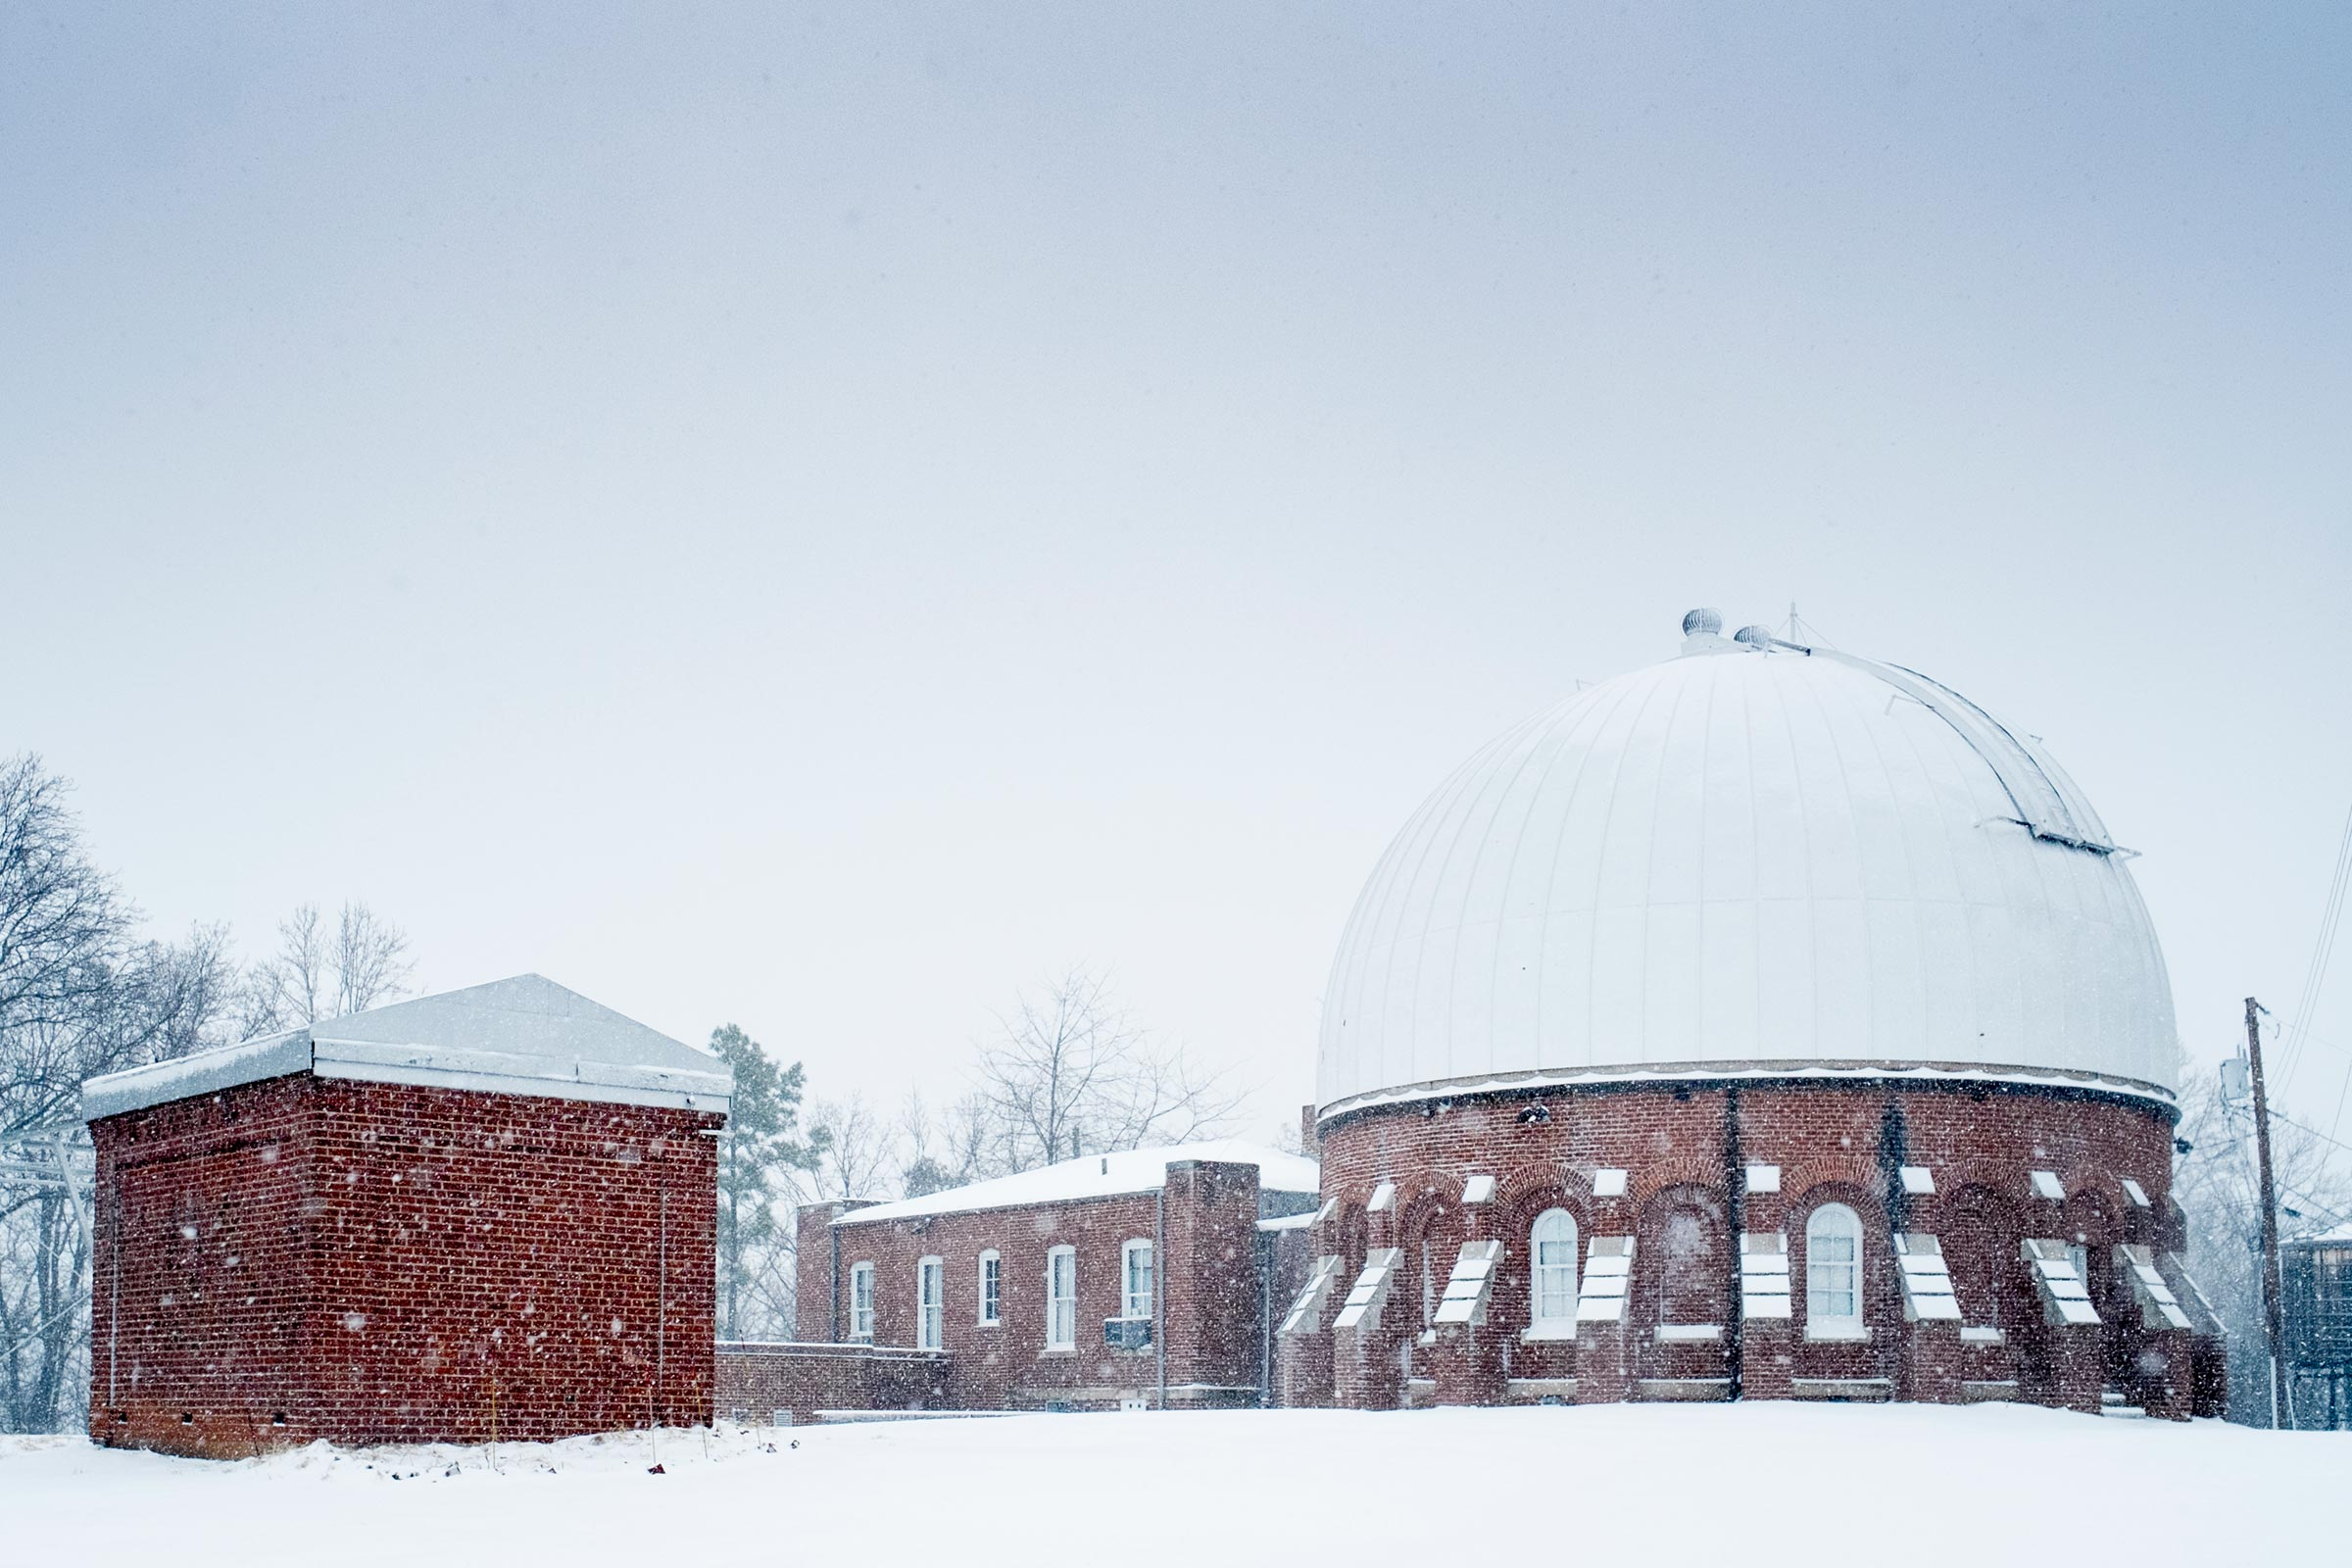 UVA has been capturing weather data on at McCormick Observatory on Grounds for decades - the oldest records go back to the 1880s. (File photo by Sanjay Suchak, University Communications)